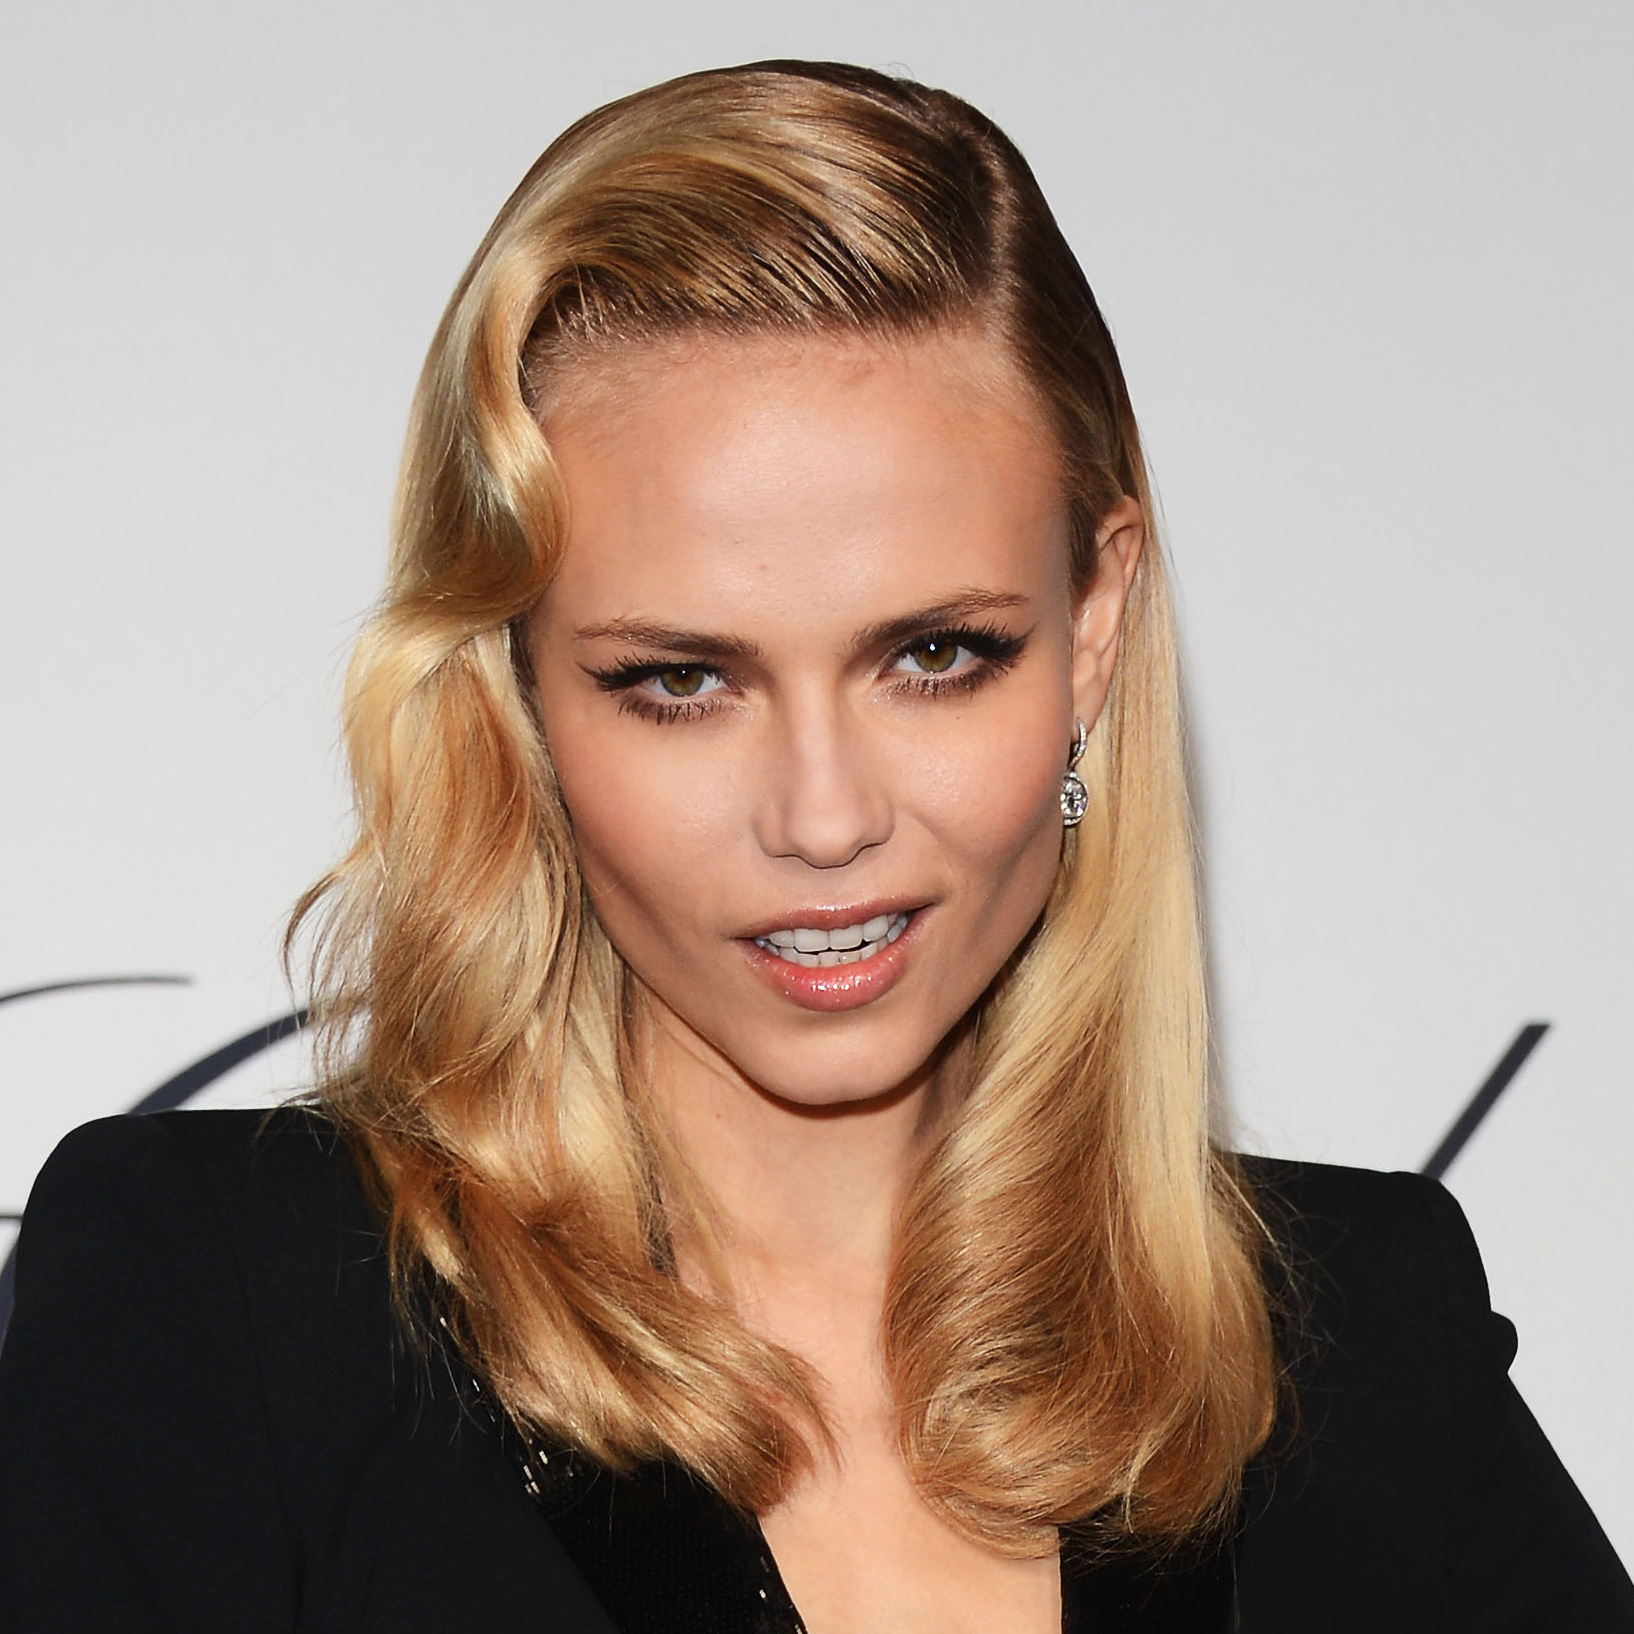 Natasha Poly - 2018 Light Blond hair & alternative hair style. Current length:  near-shaved Hair